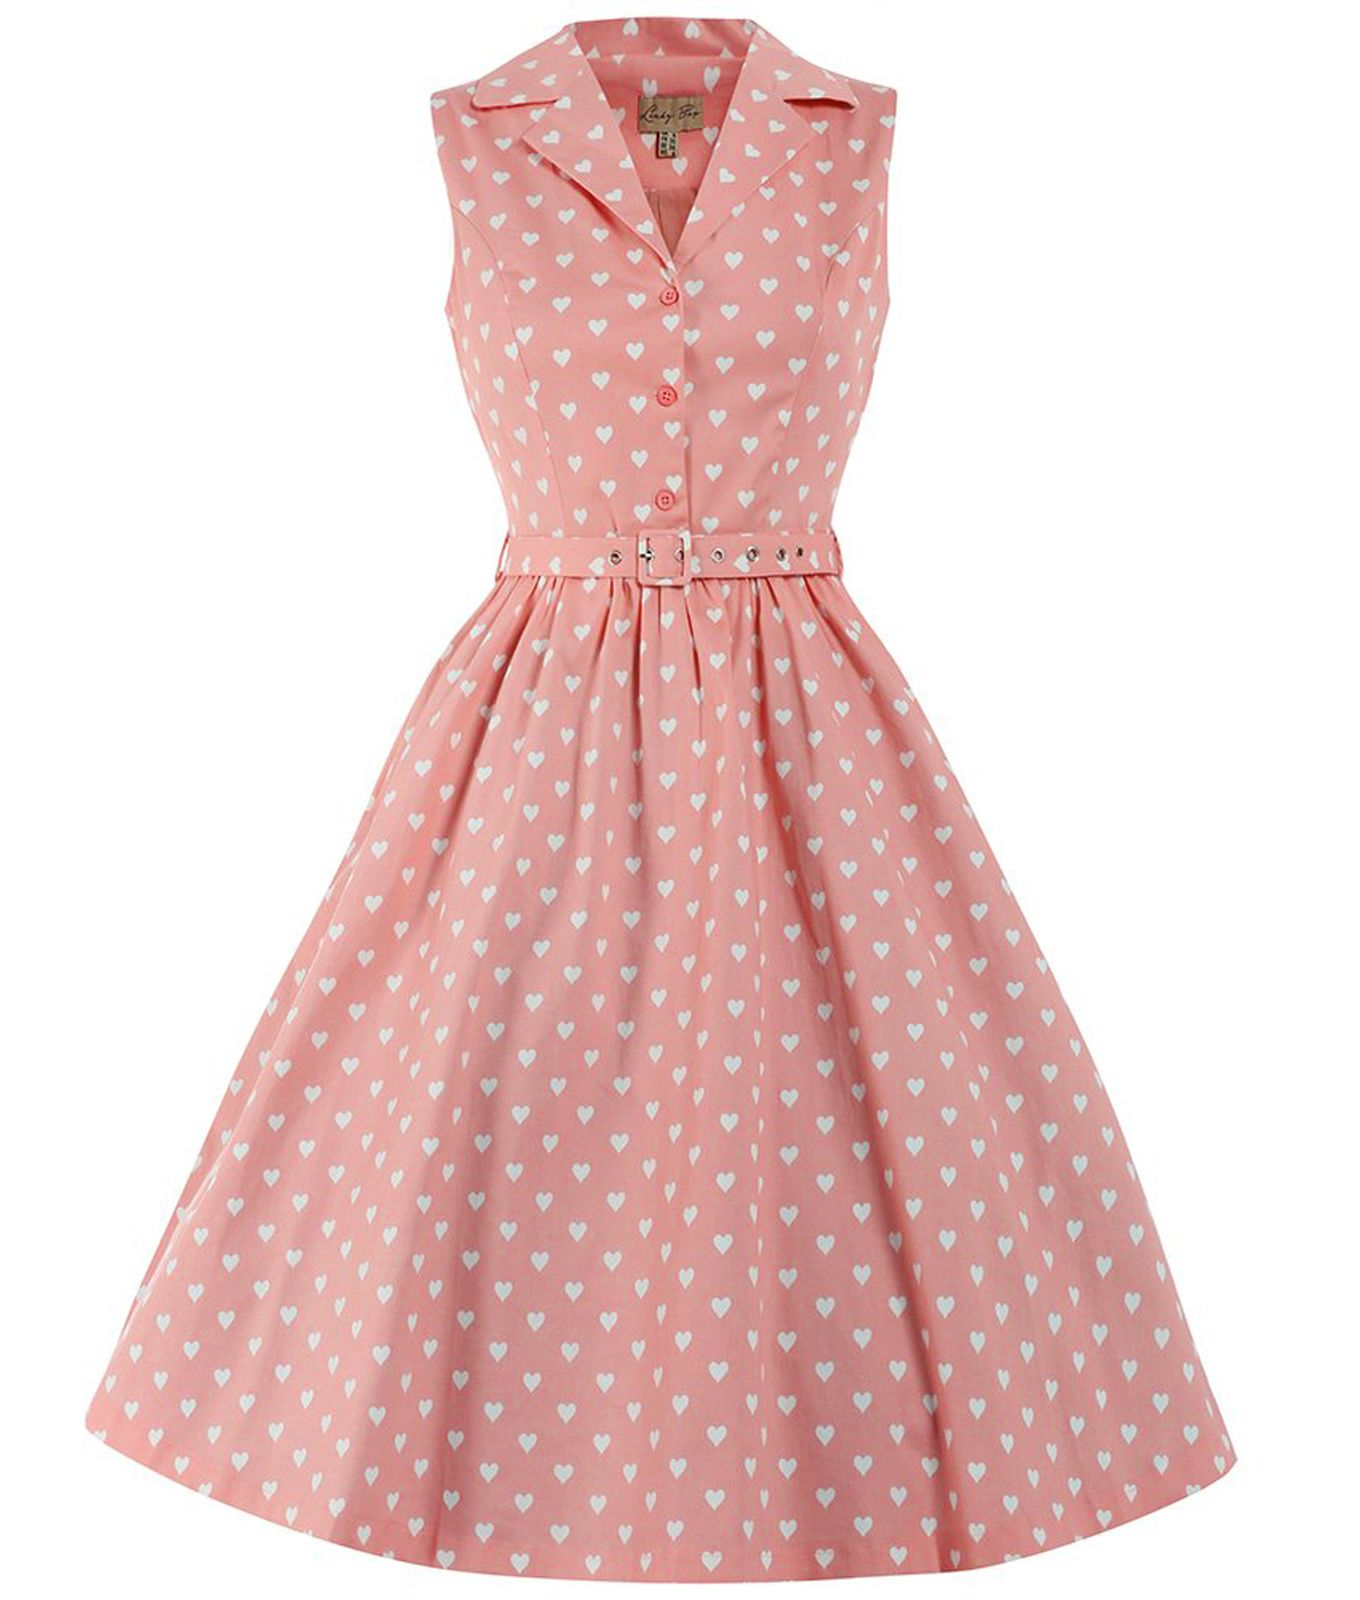 Lindy Bop 50s Matilda Heart Shirt Dress Dress Pink | Make ...